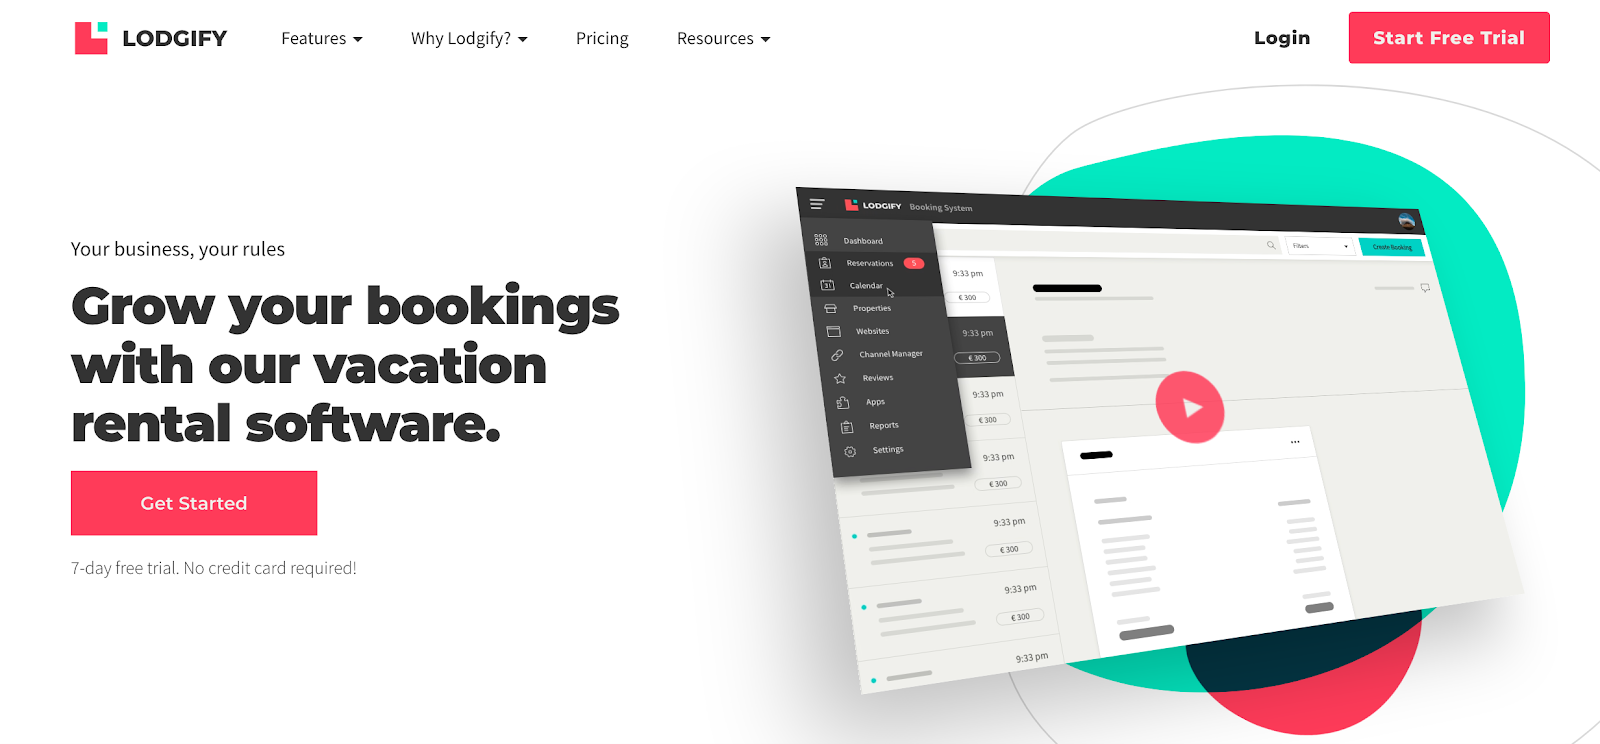 Lodgify   Vacation Rental Software   Promote and Earn through their Influencer Program